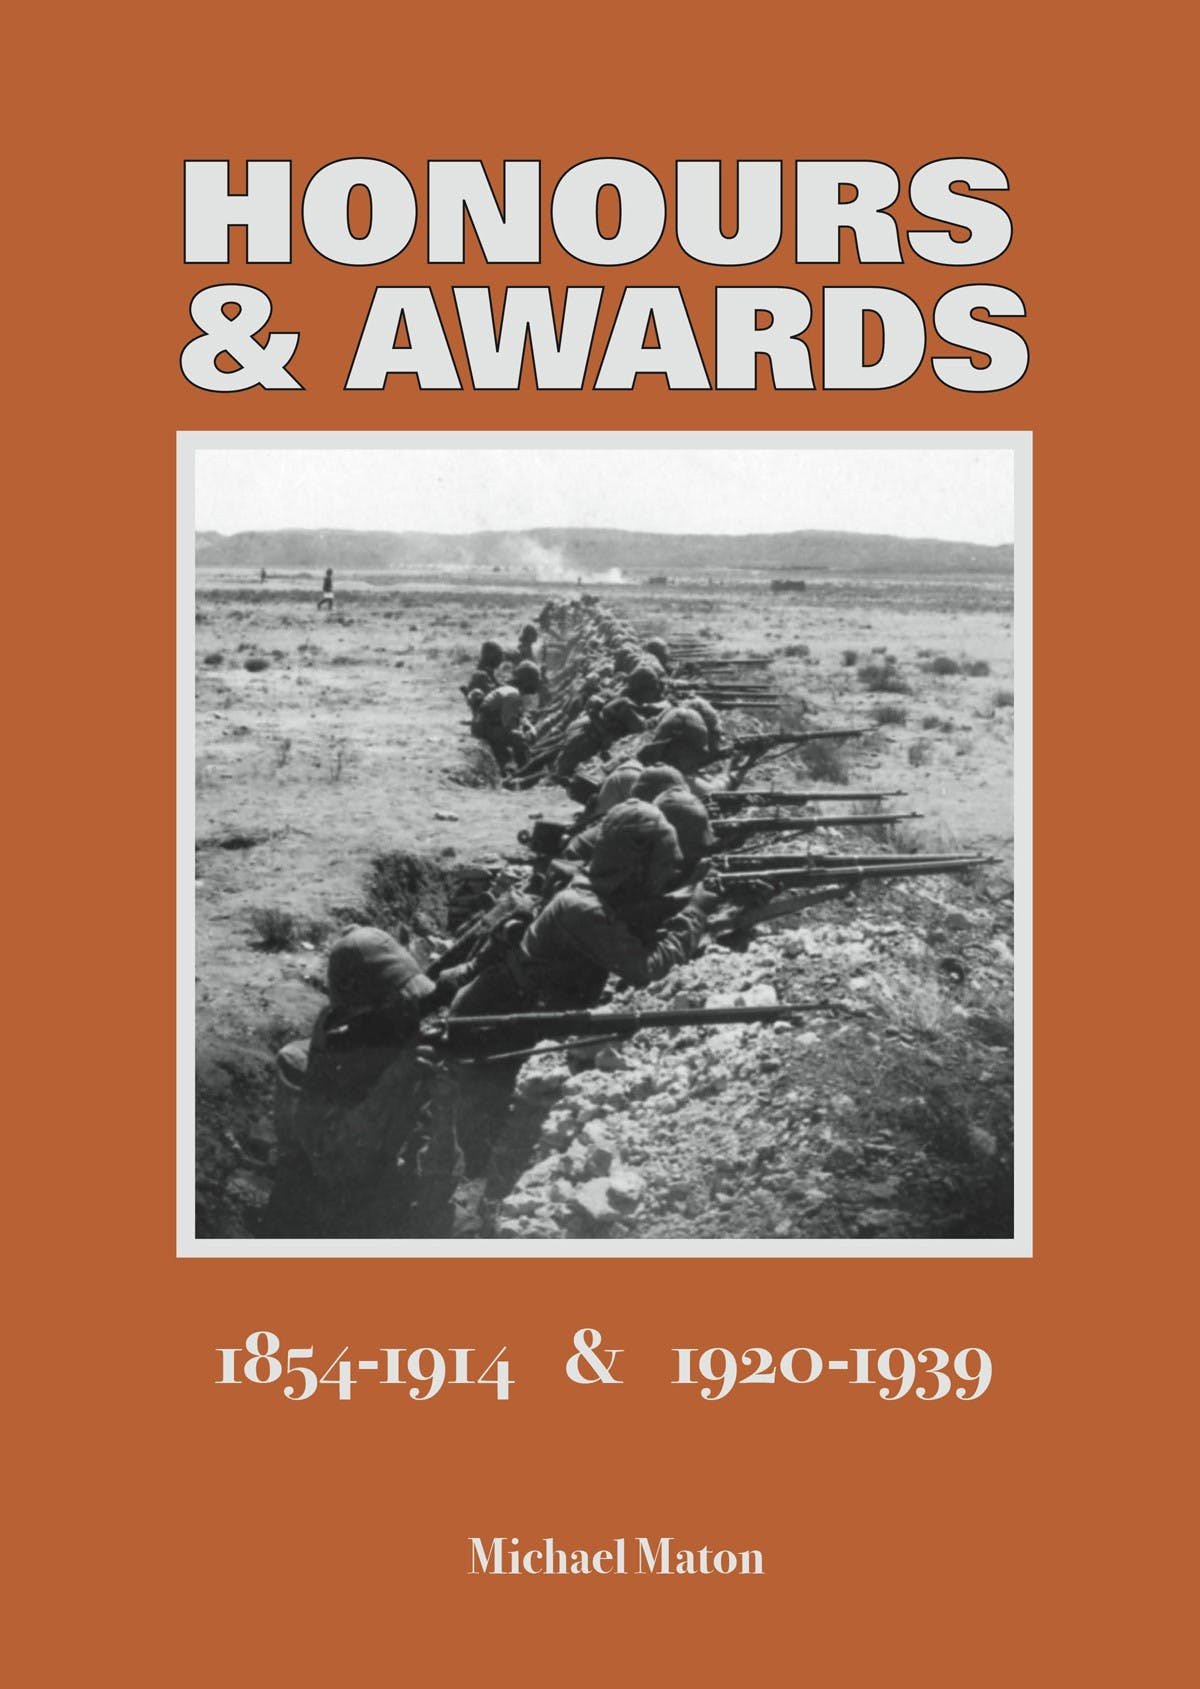 Honours and Awards 1854-1914 & 1920-1939 in the Token Publishing Shop